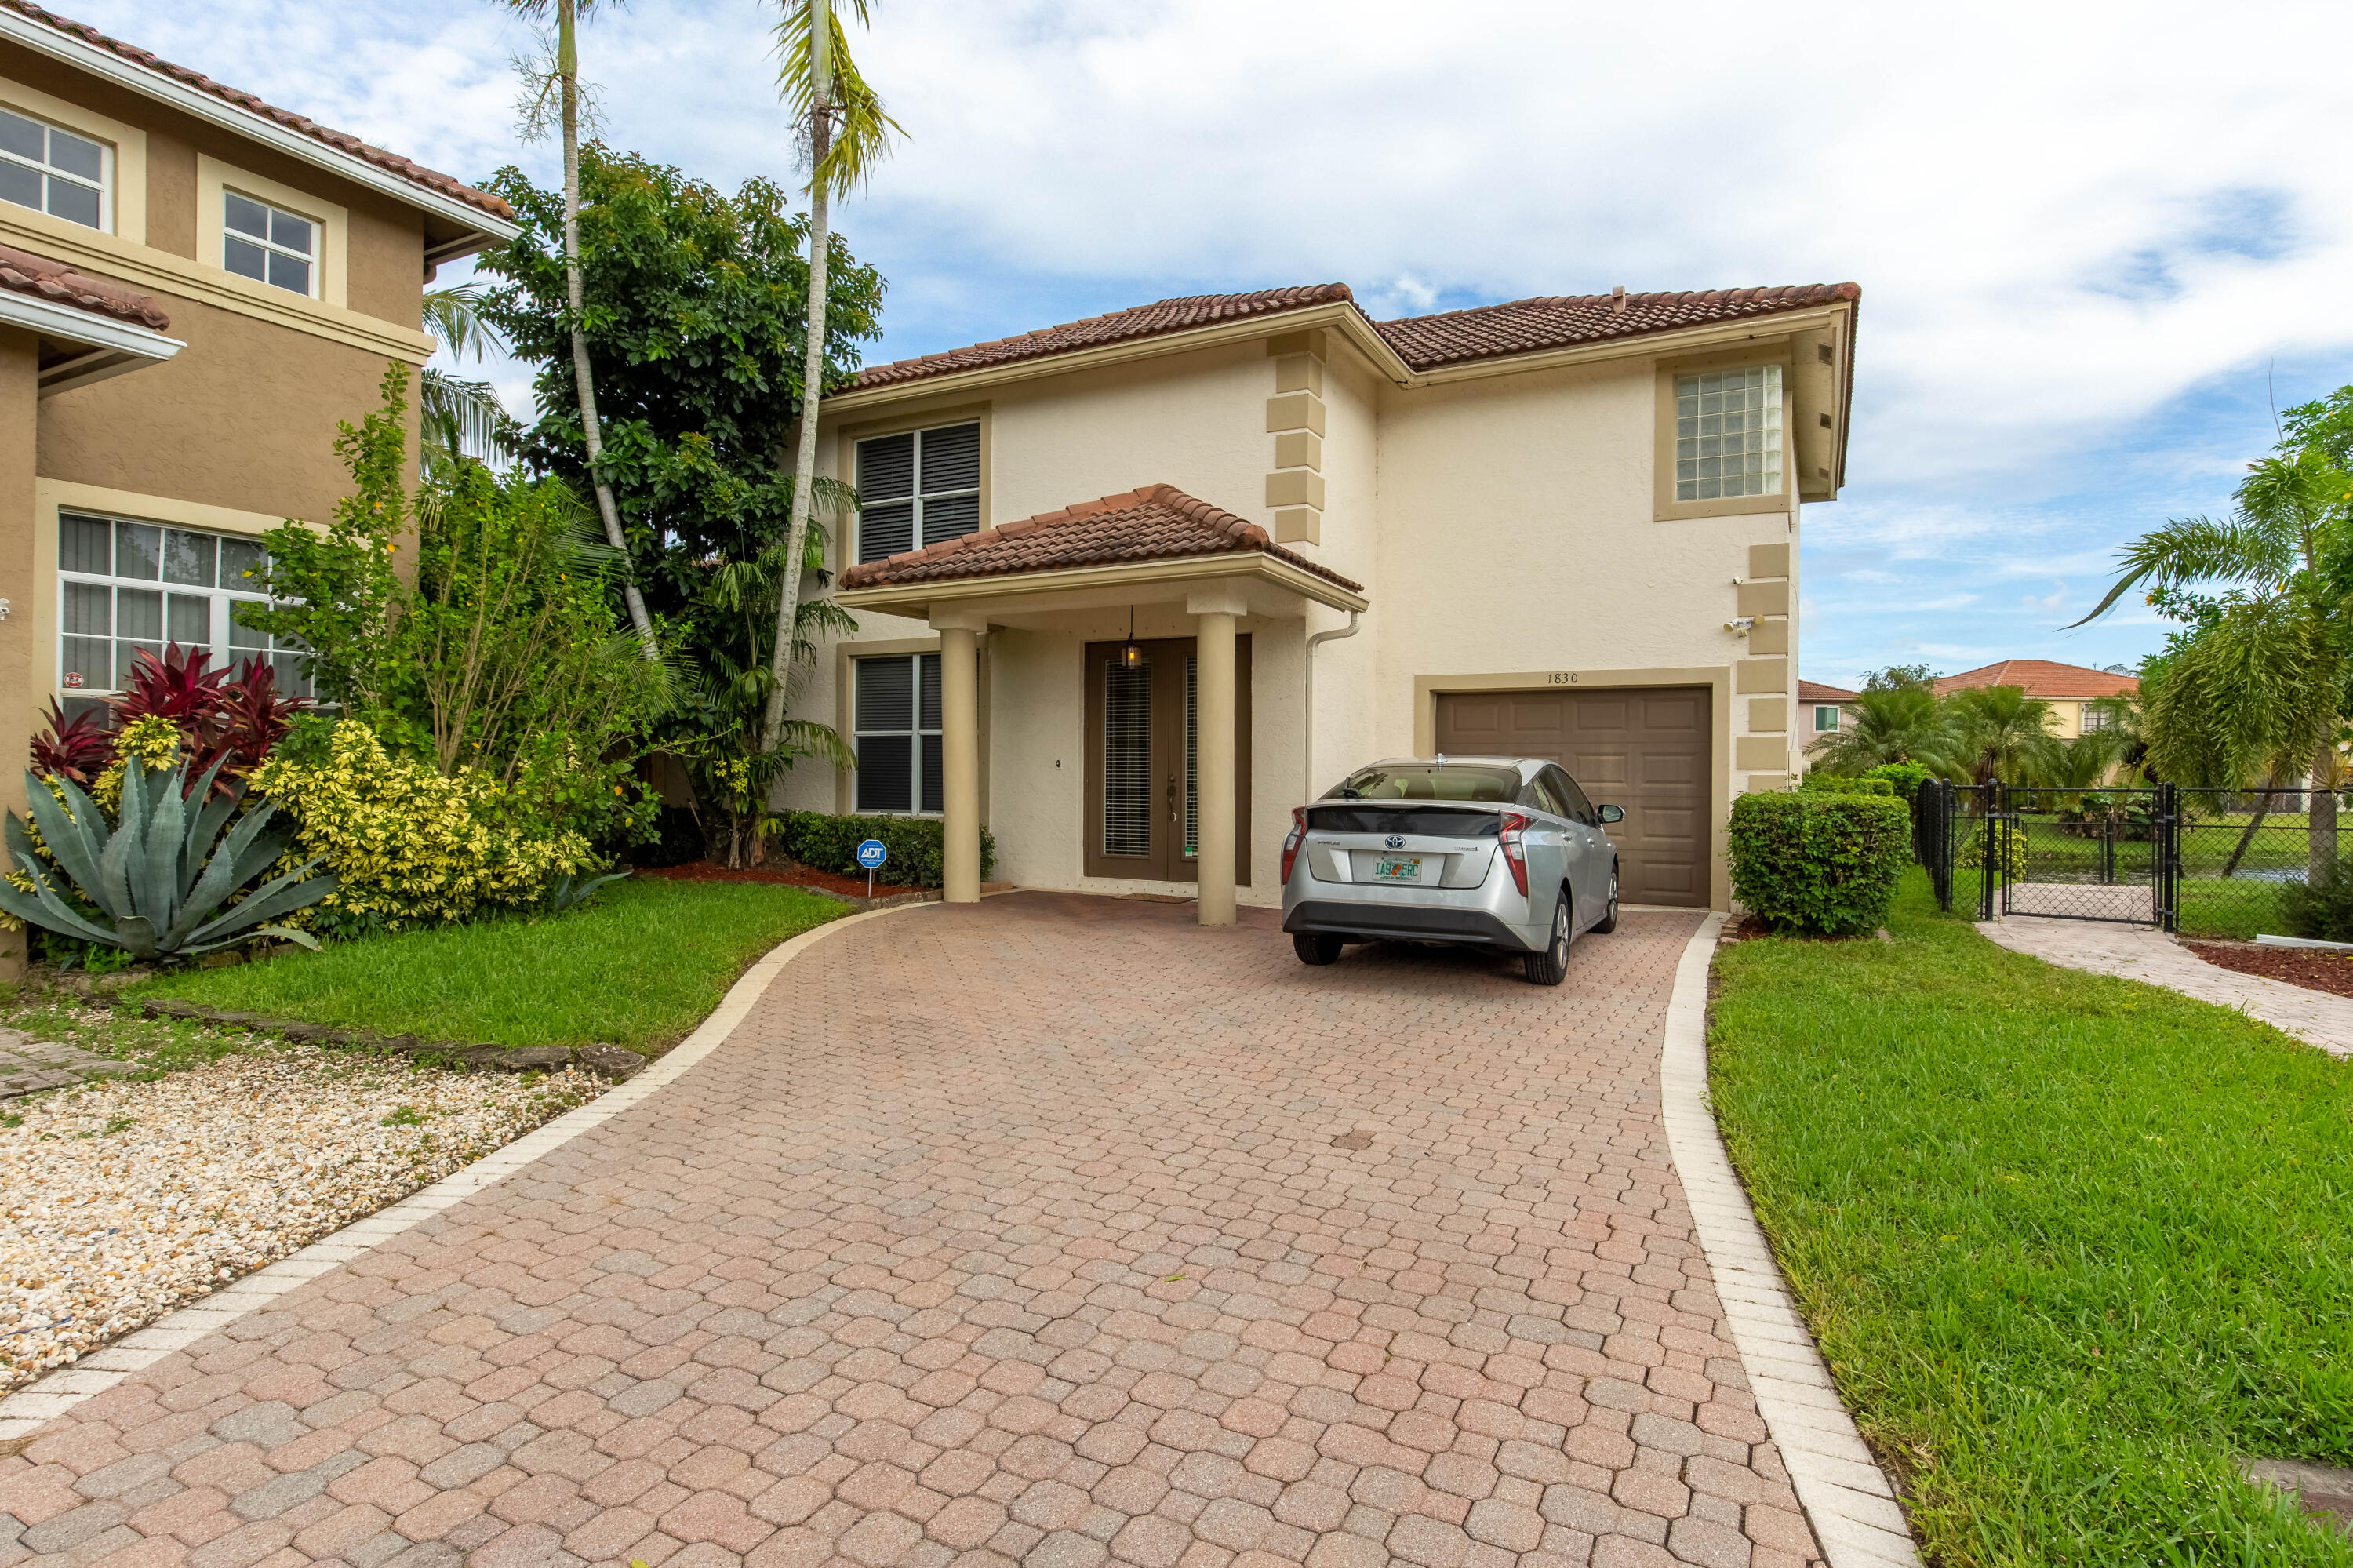 1830  Capeside Circle  For Sale 10749271, FL